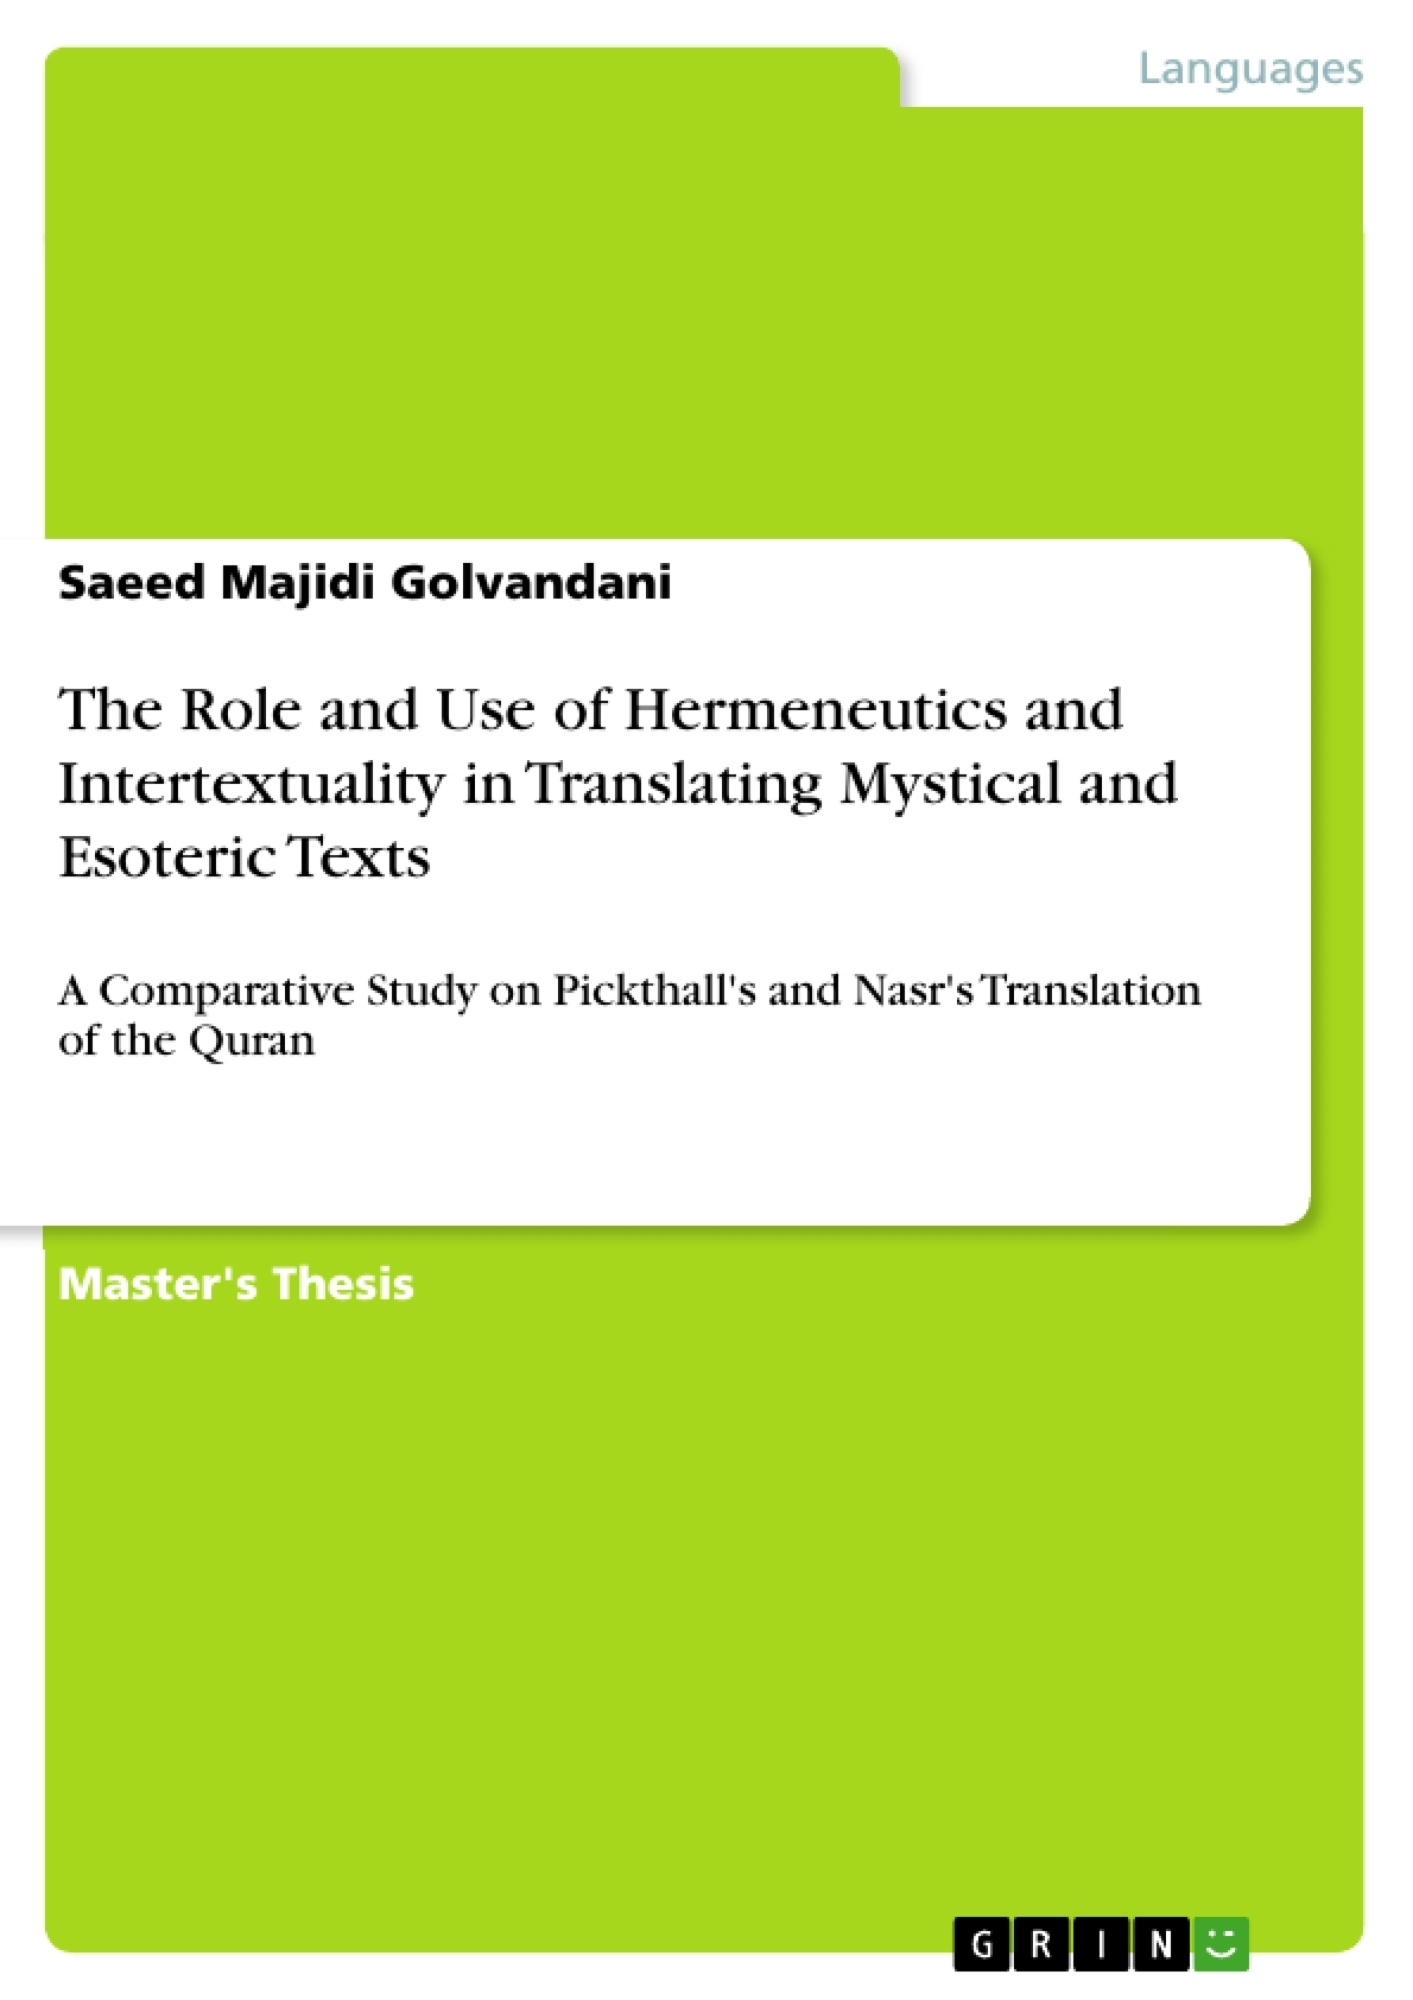 Title: The Role and Use of Hermeneutics and Intertextuality in Translating Mystical and Esoteric Texts